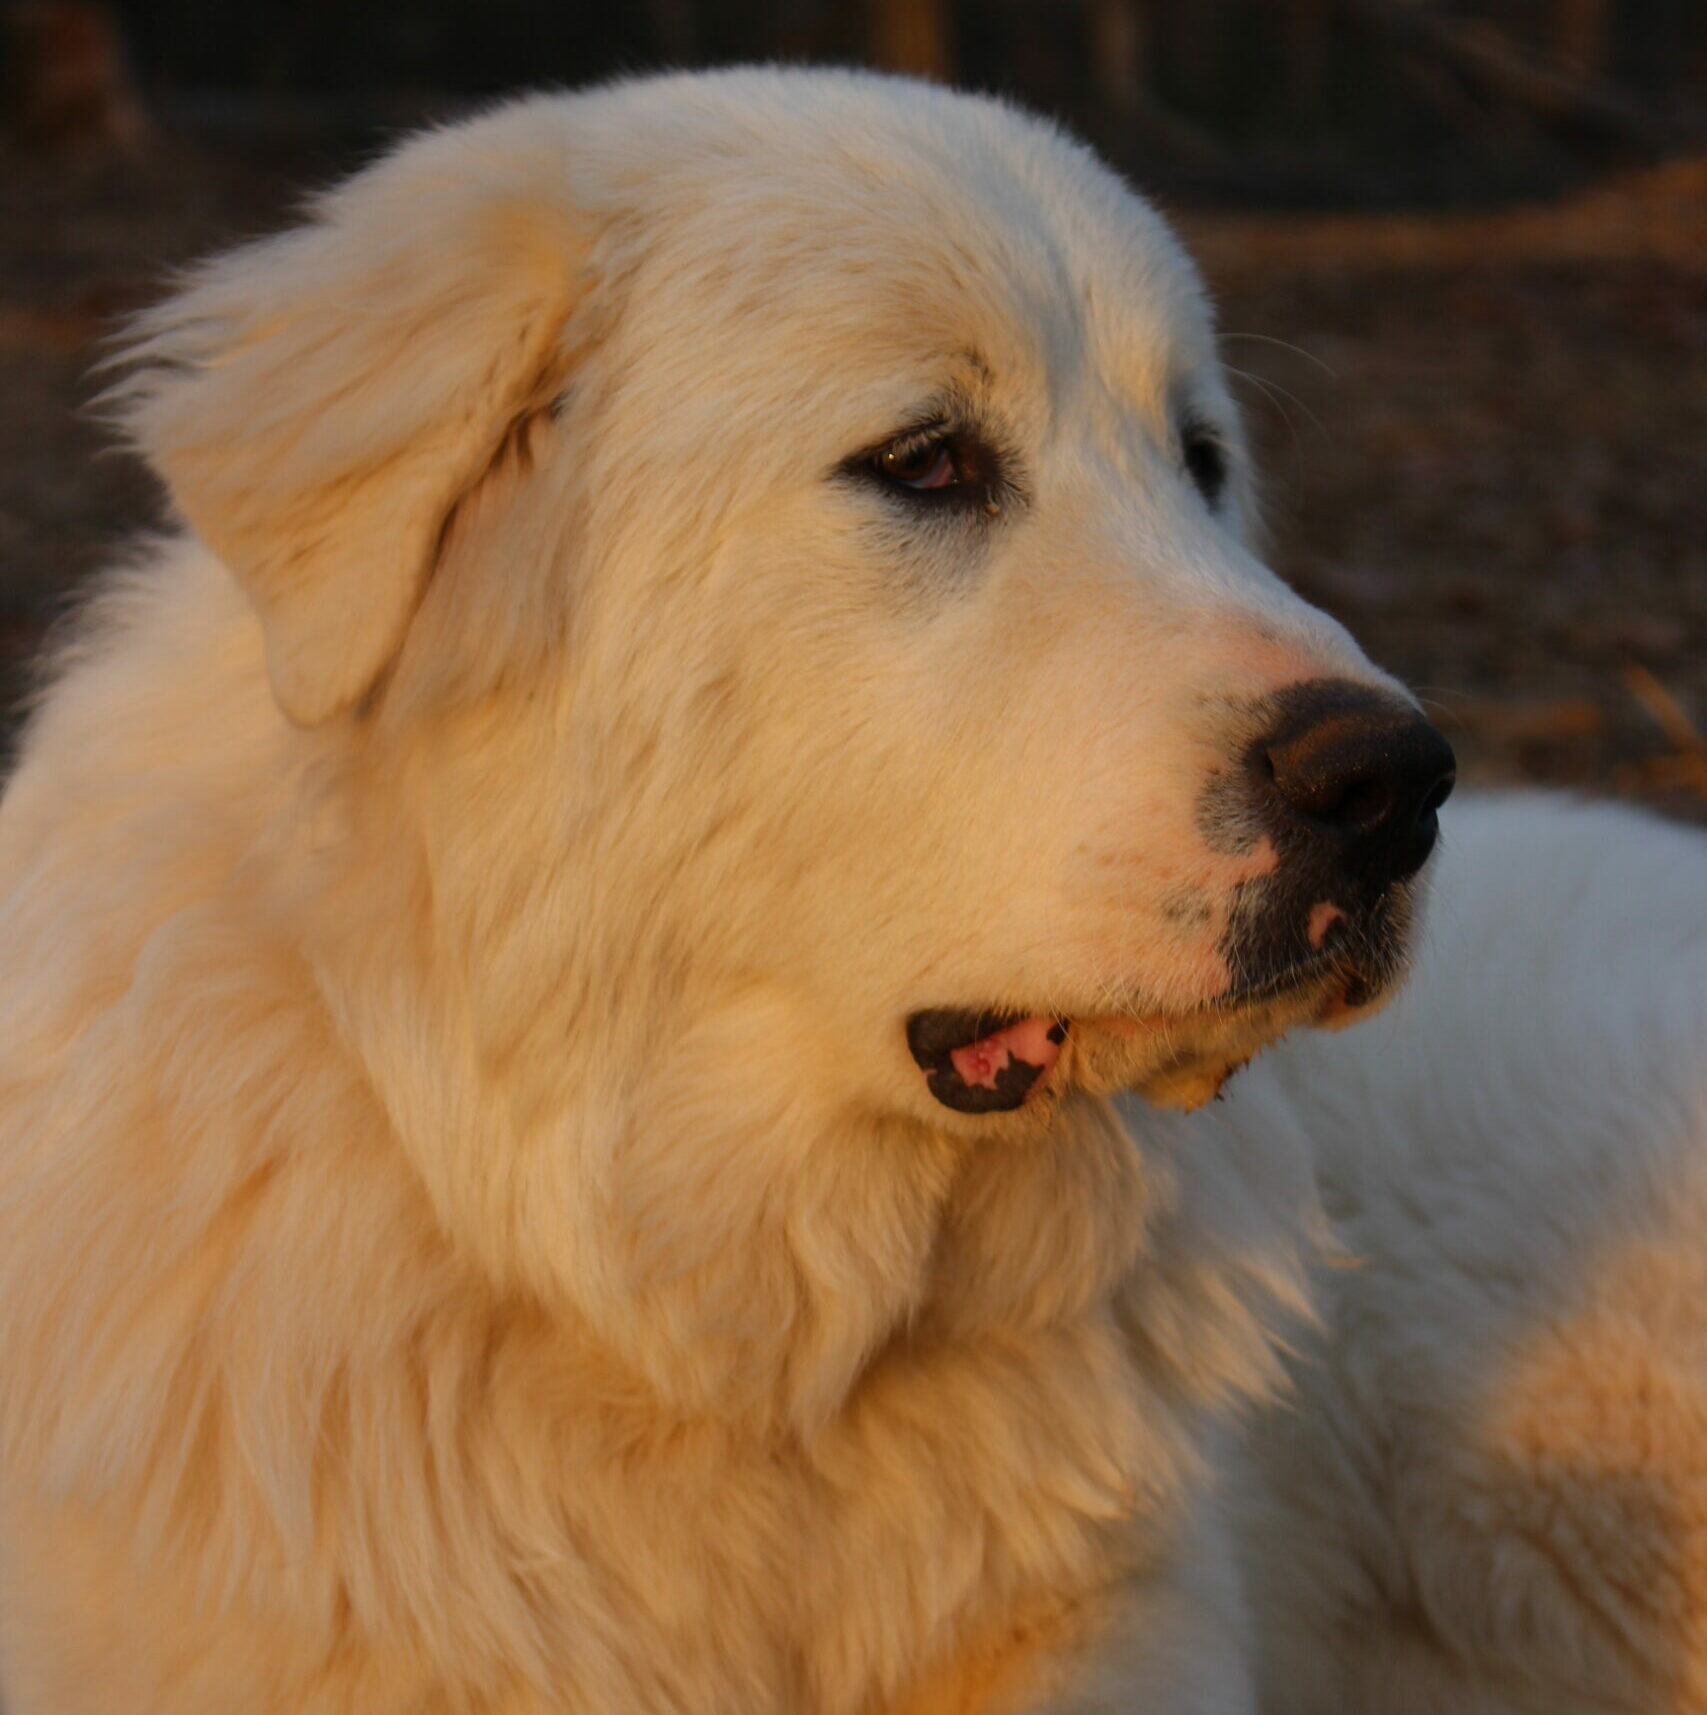 Great Pyrenees for Sale NC, Shady Acres Farm NC, Great Pyrenees Thomasville North Carolina, livestock guardian dog, Great Pyrenees North Carolina for Sale, Great Pyrenees for sale